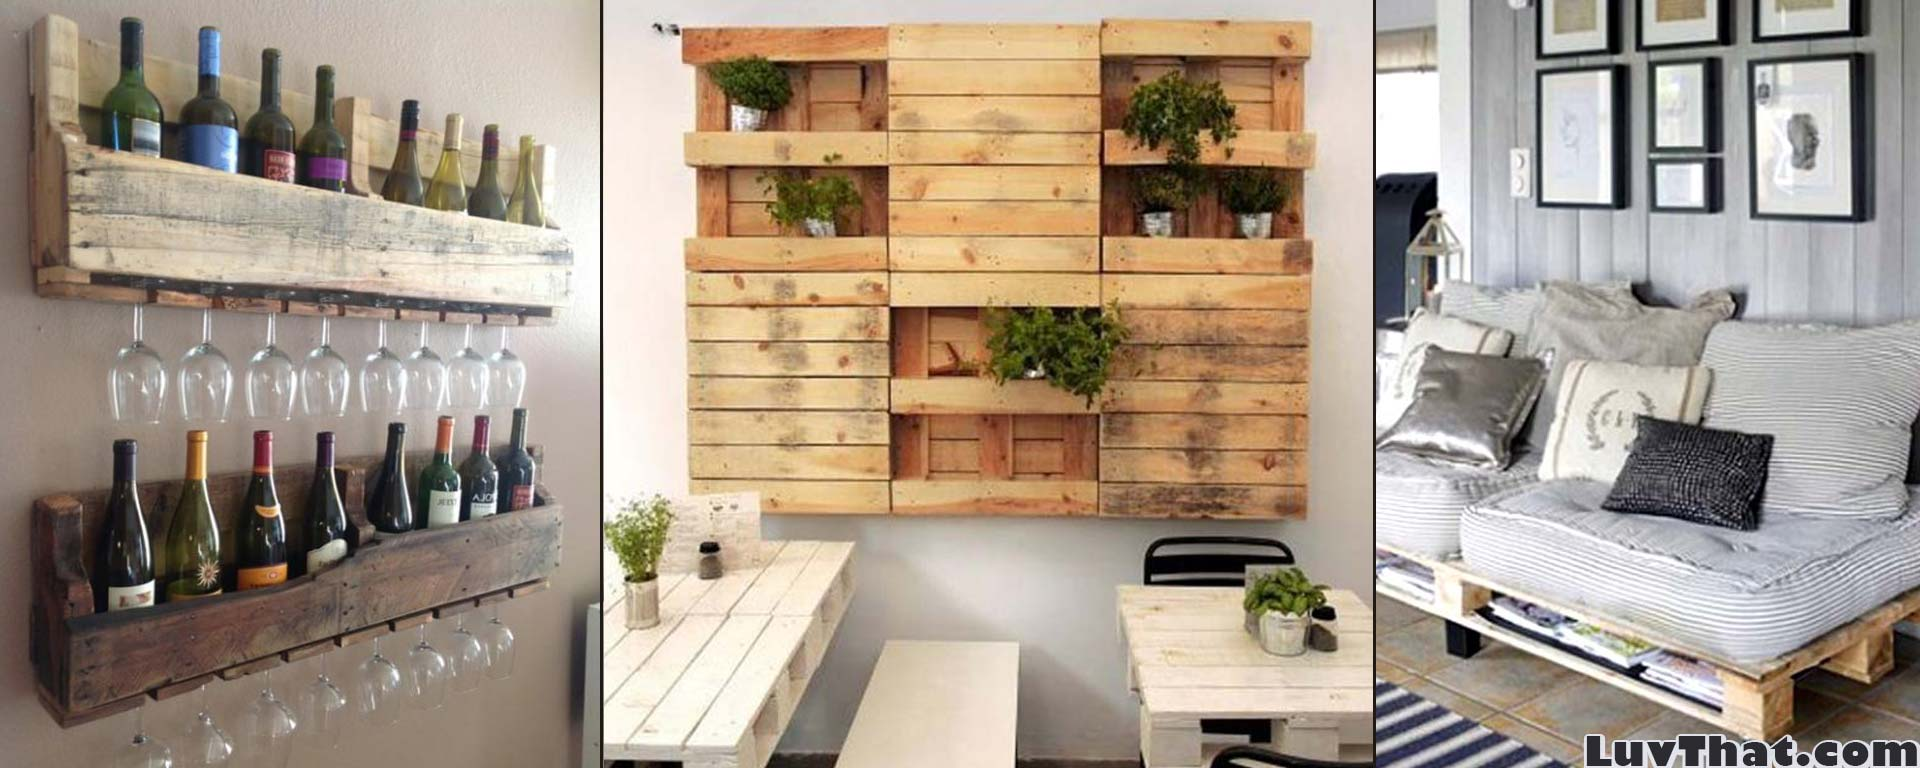 Home Interior Decor Ideas Cool Wood Pallet Furniture Ideas Luvthat